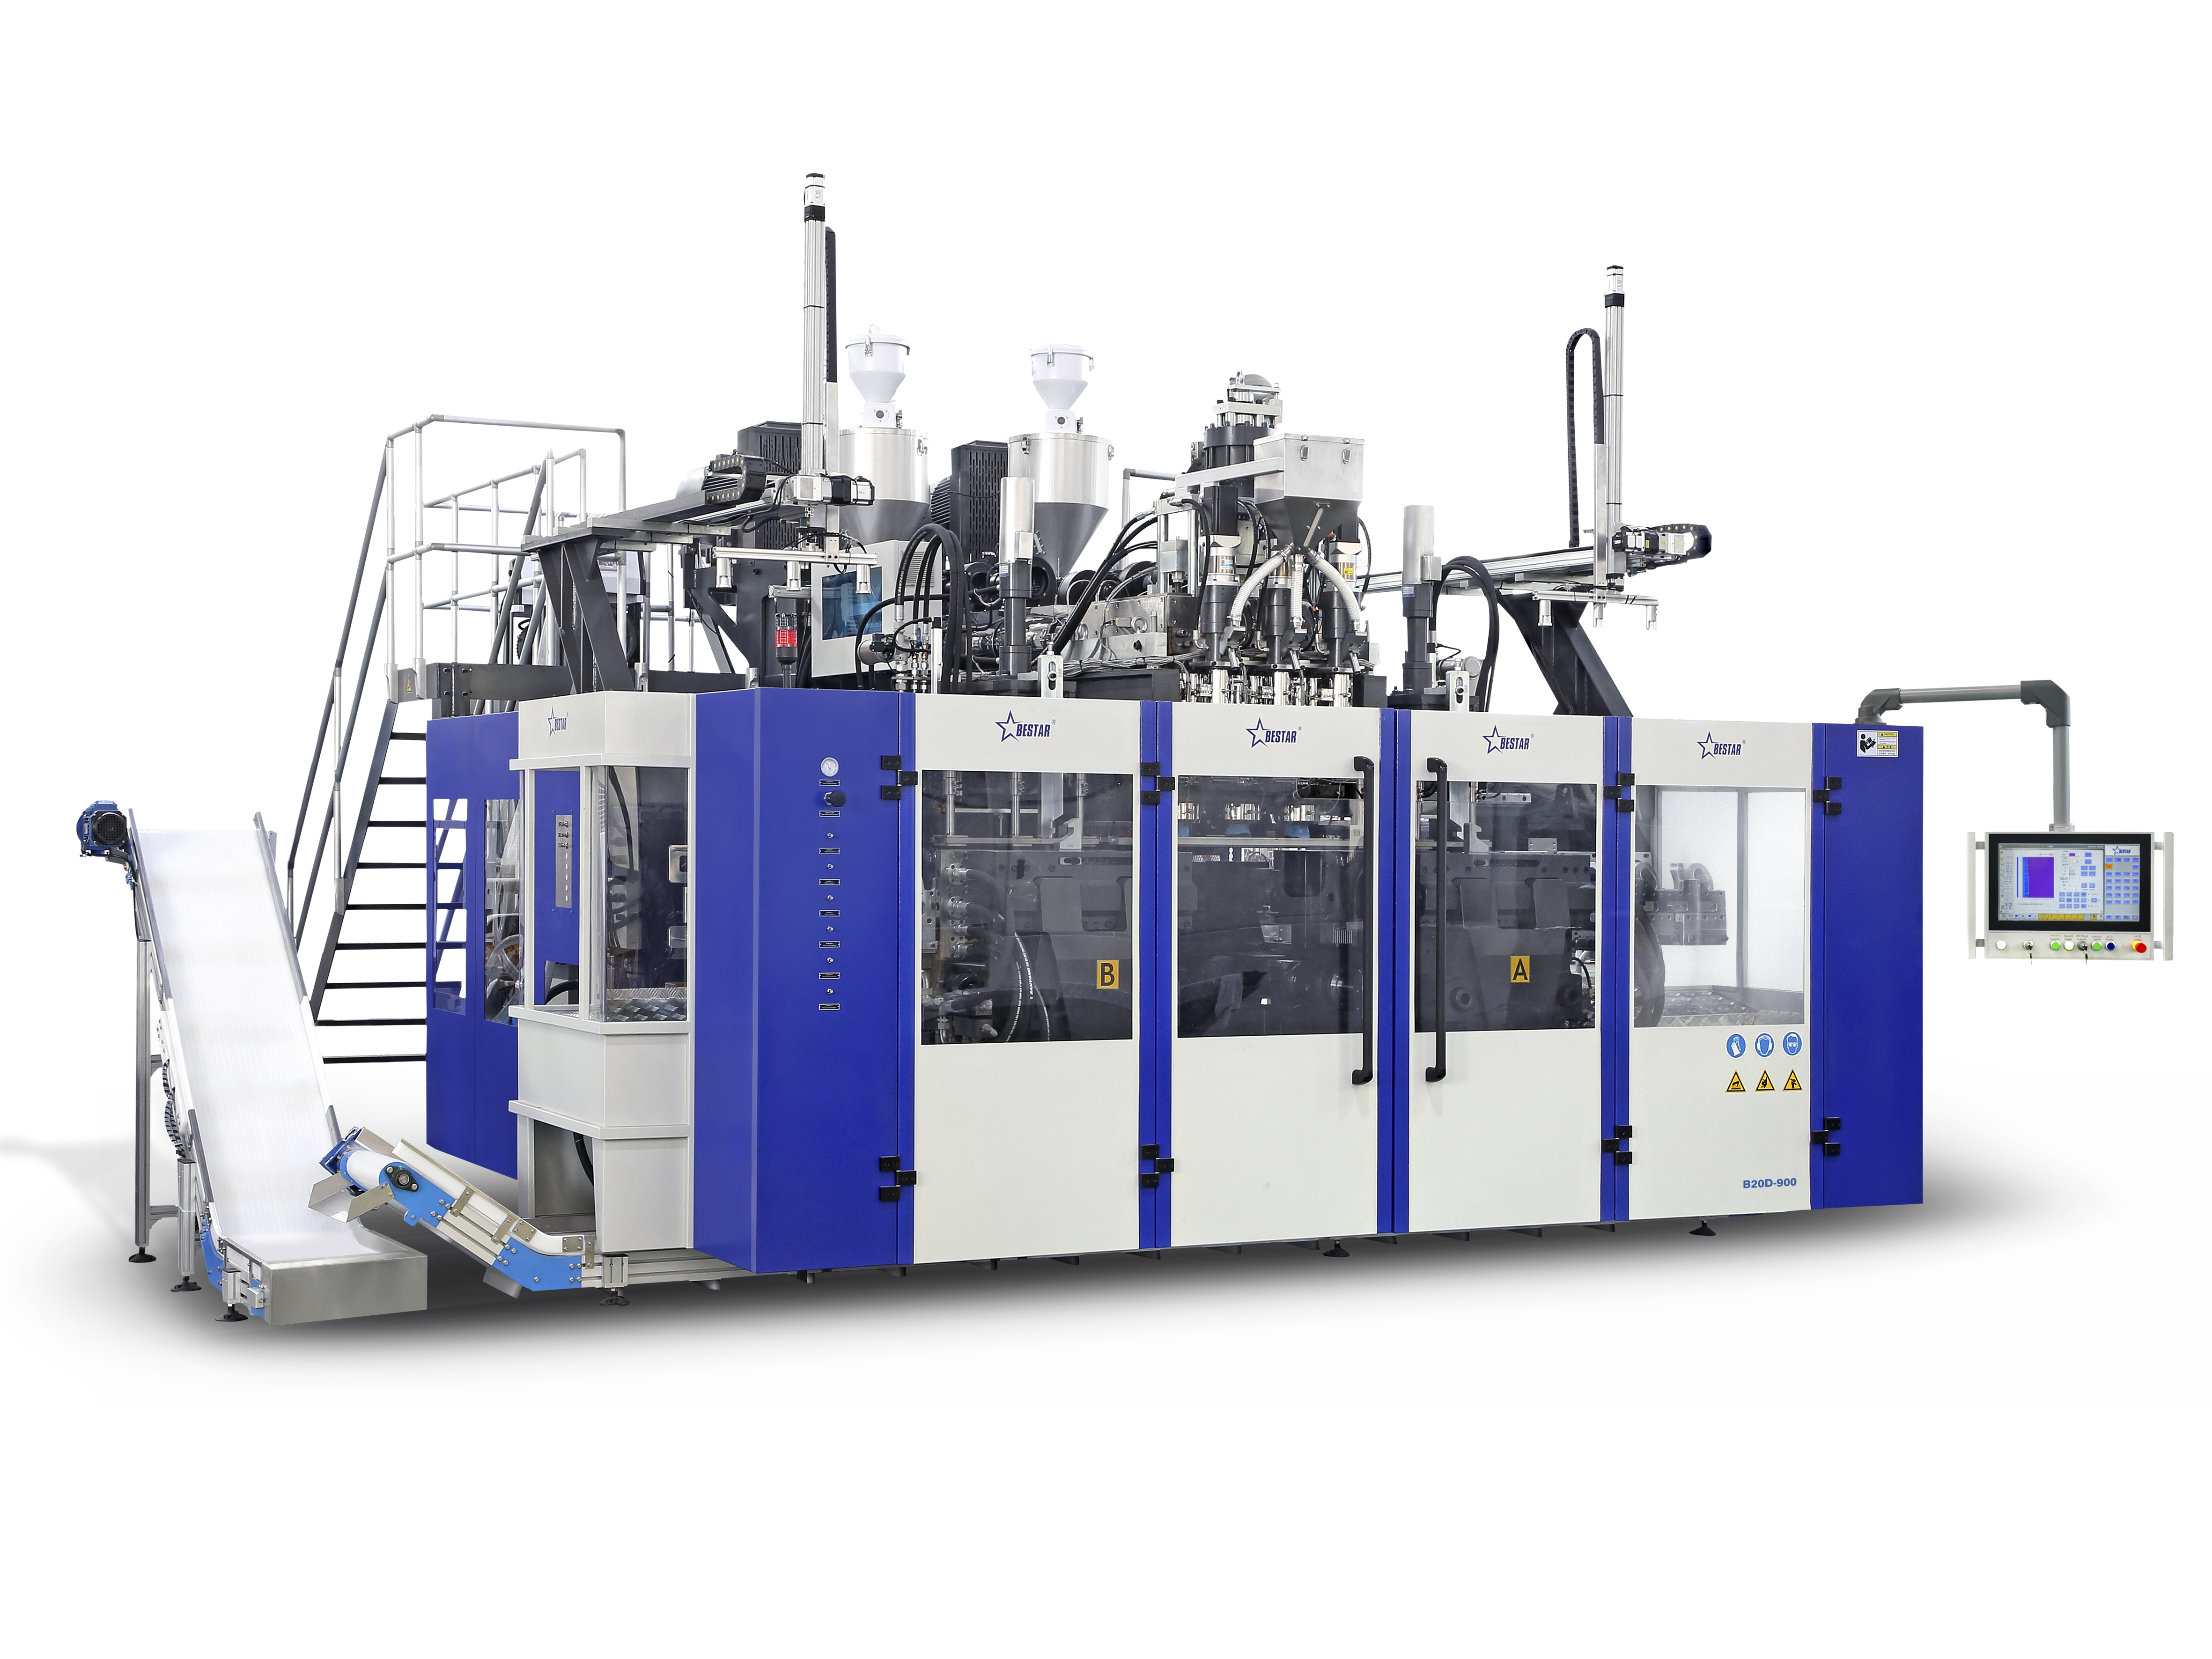 B20D-900 Blow Moulding Machine (2 Stations 3 Die Heads